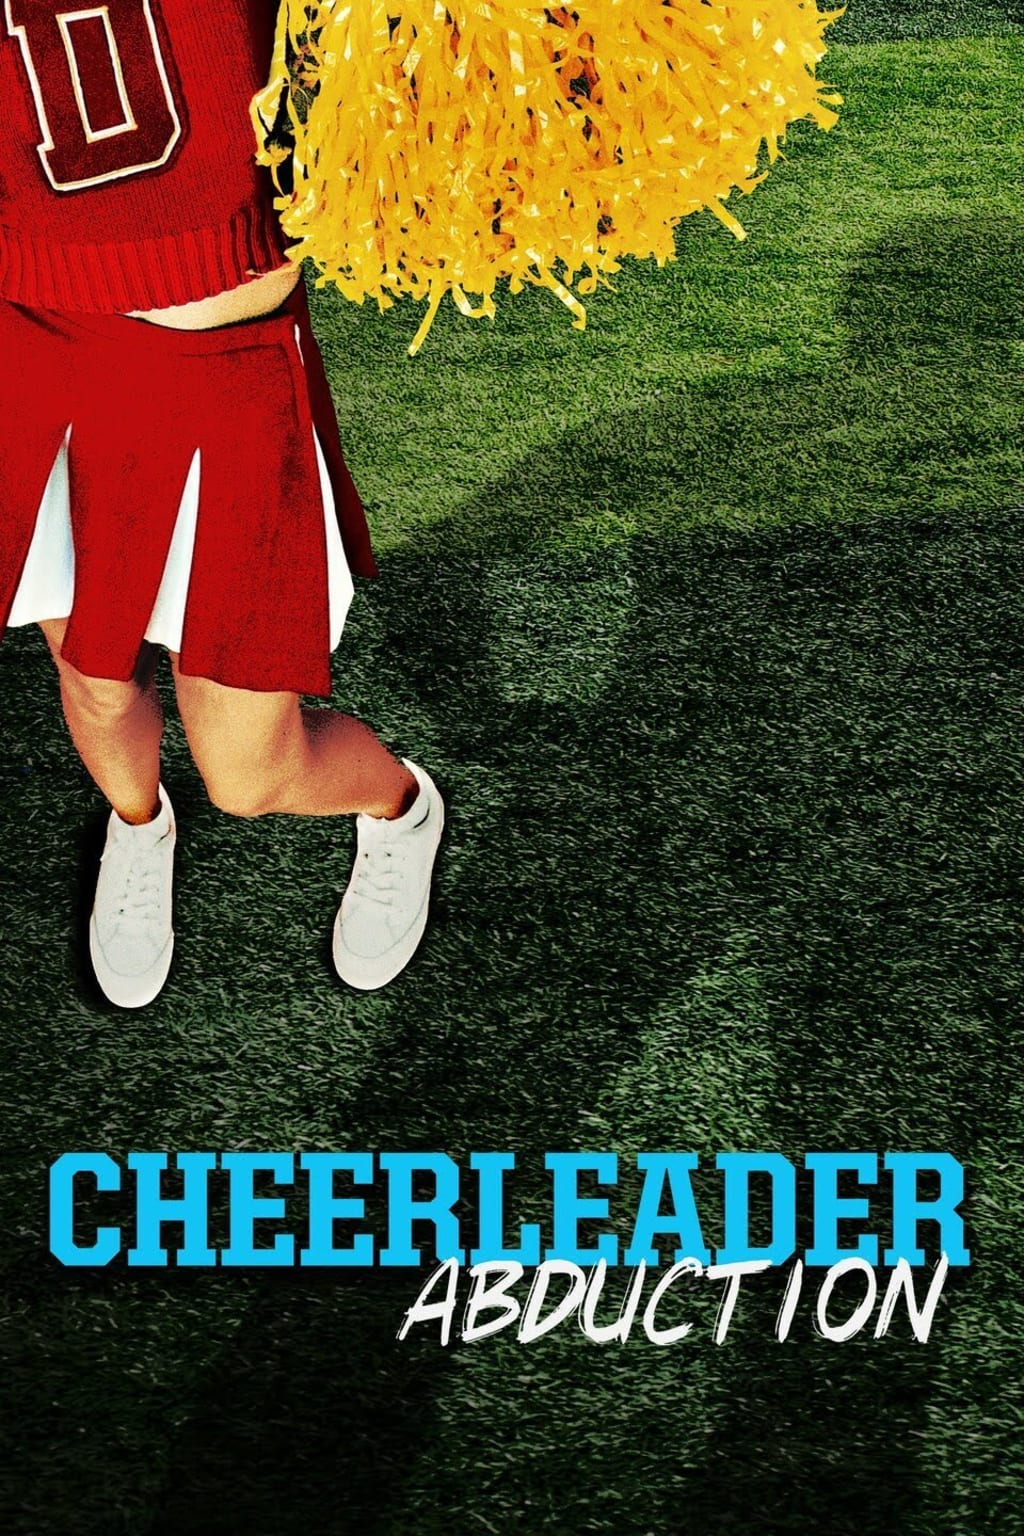 Lifetime Review: 'Cheerleader Abduction'